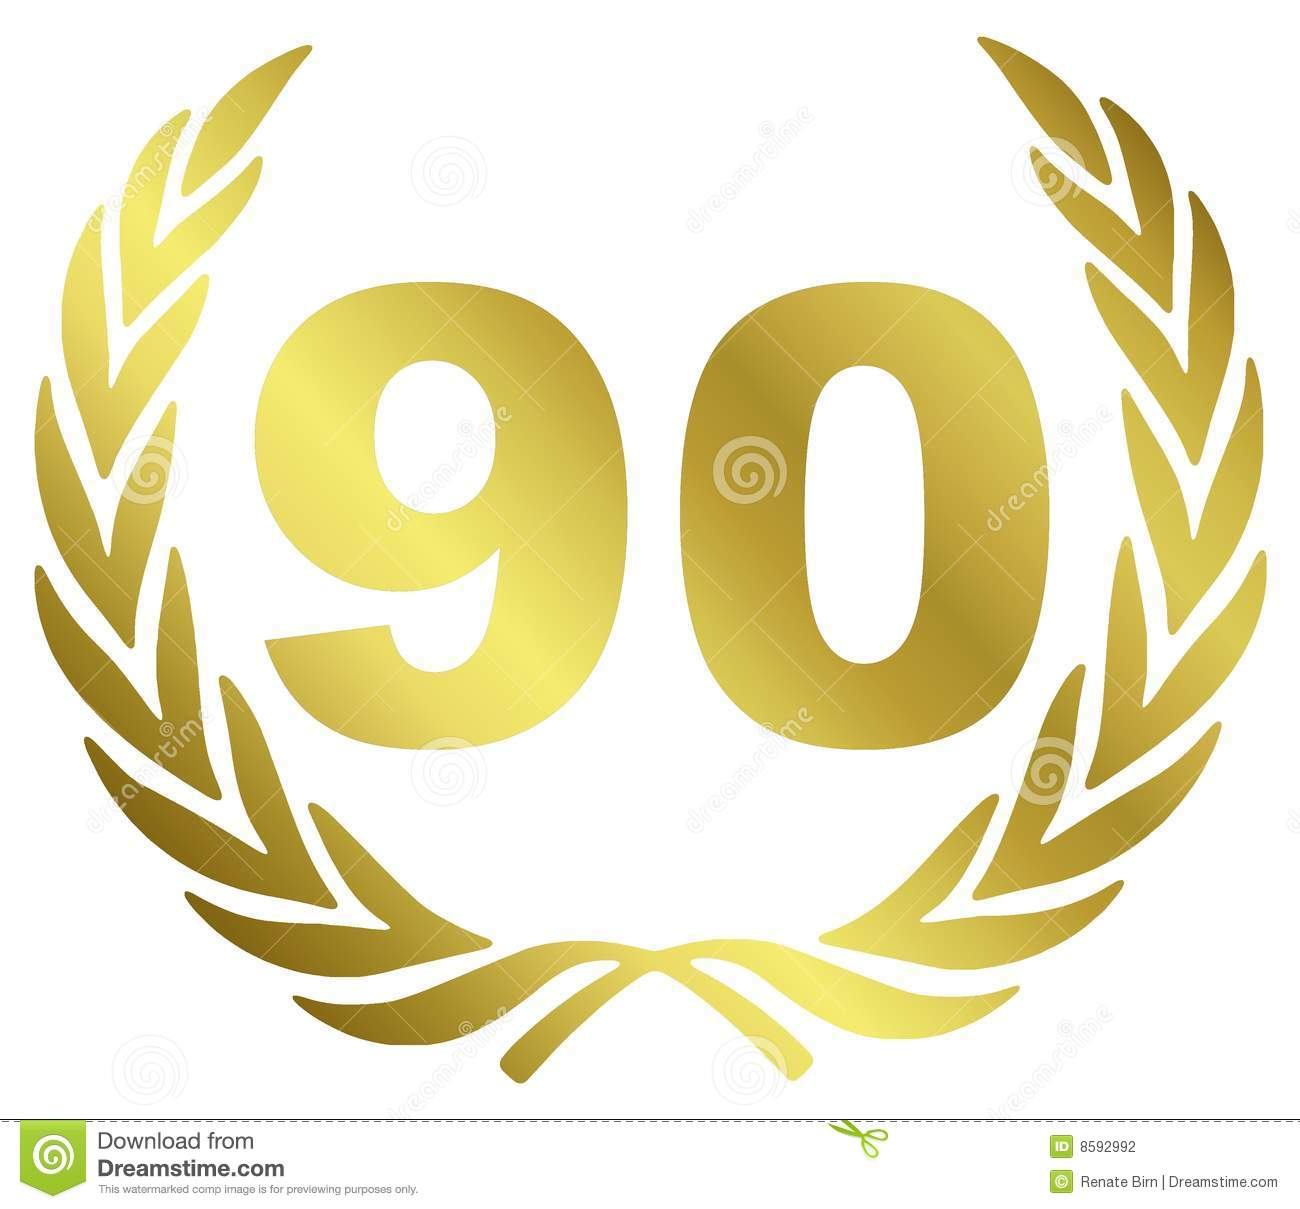 90 anniversary stock illustration illustration of celebration 8592992